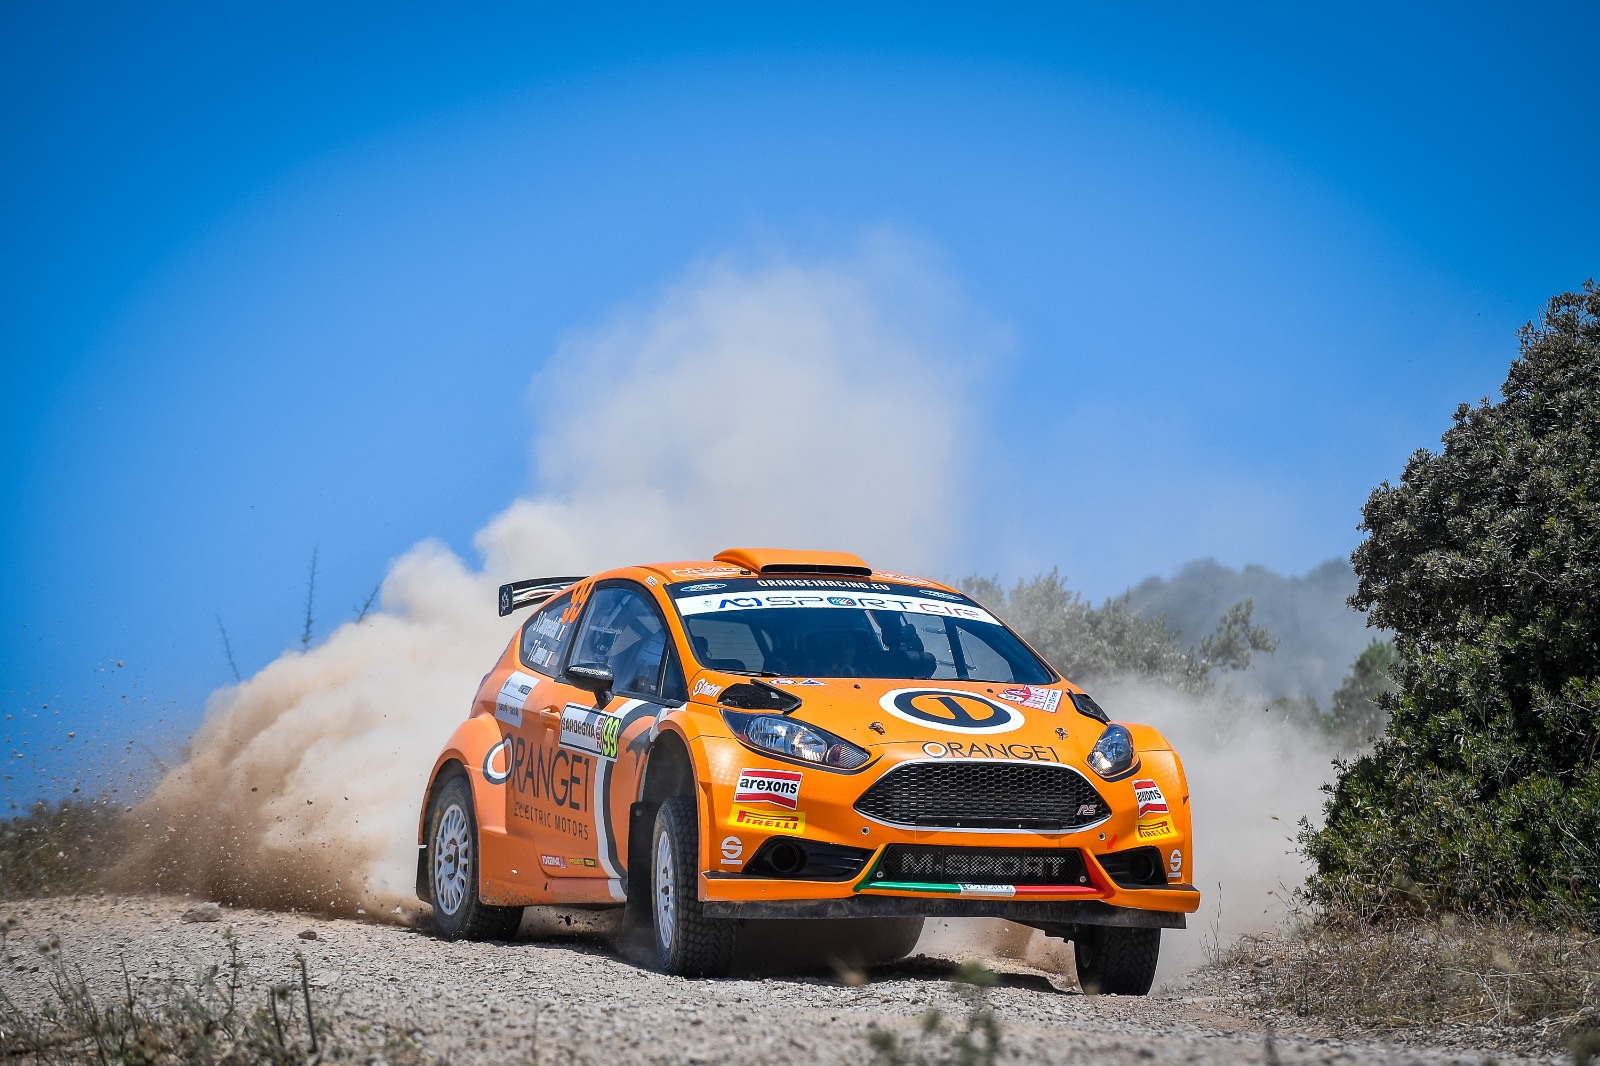 Weekend difficile per Orange1 Racing e Campedelli in Sardegna